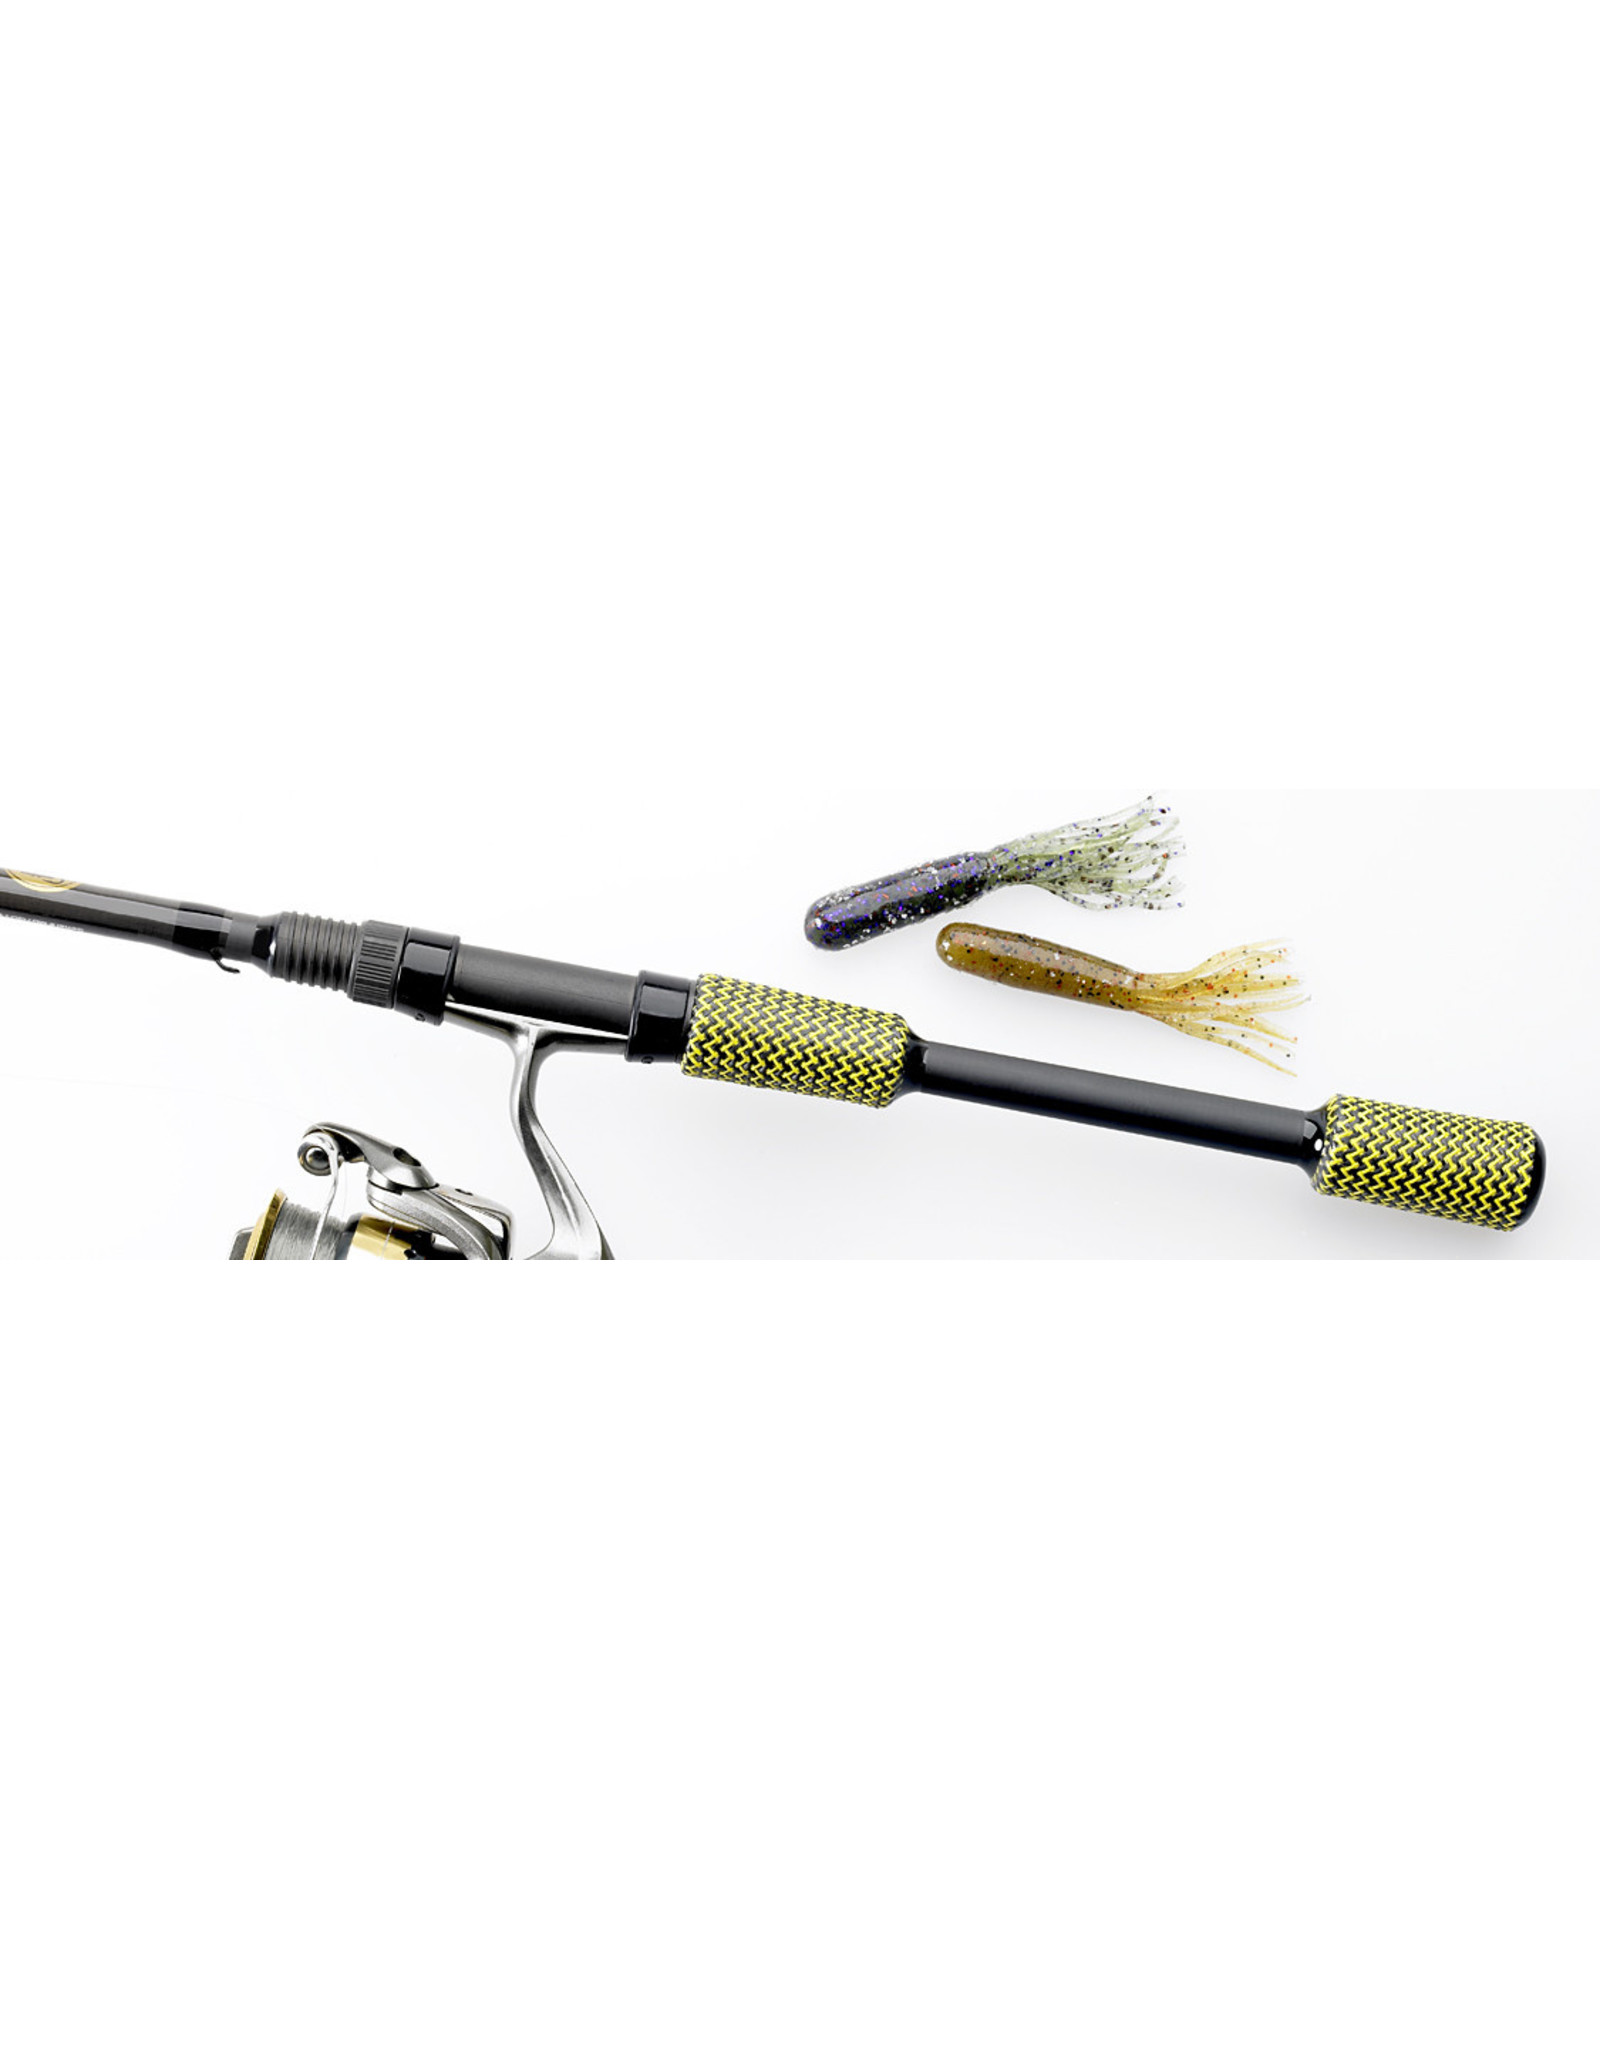 Cashion Elite Spinning Rods – Tube, Worm & Jig